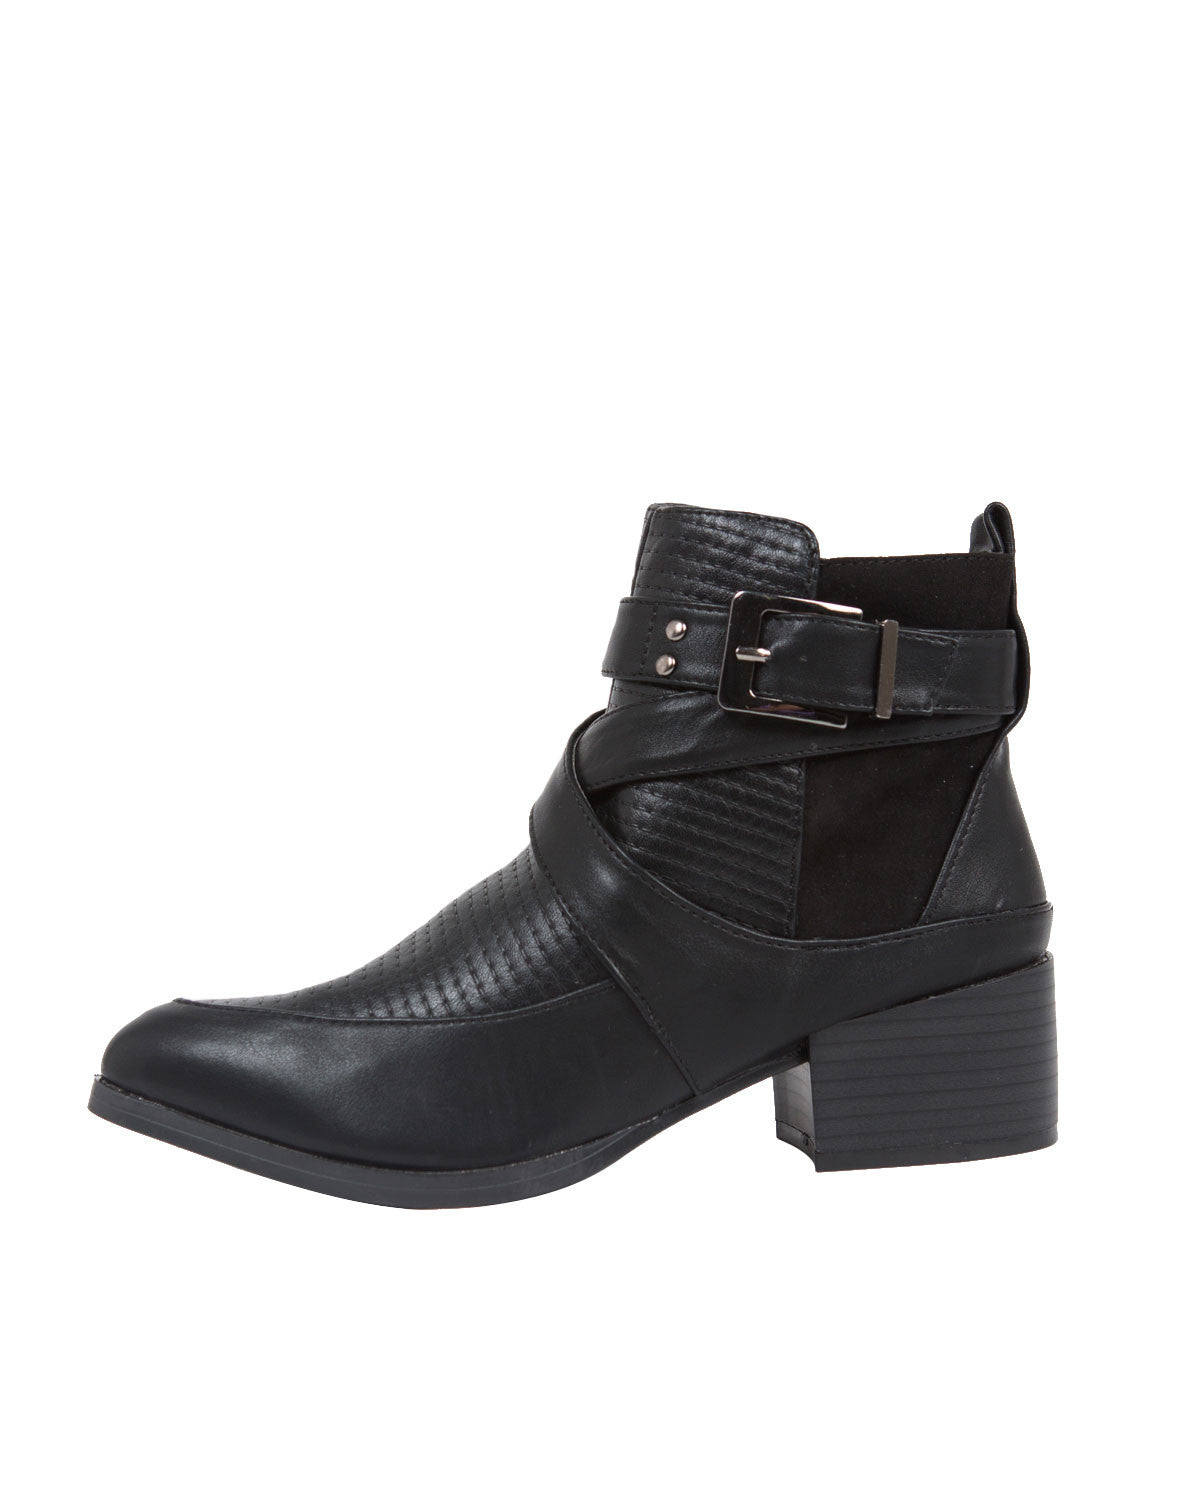 Moto Buckled Ankle Boots - 2020AVE